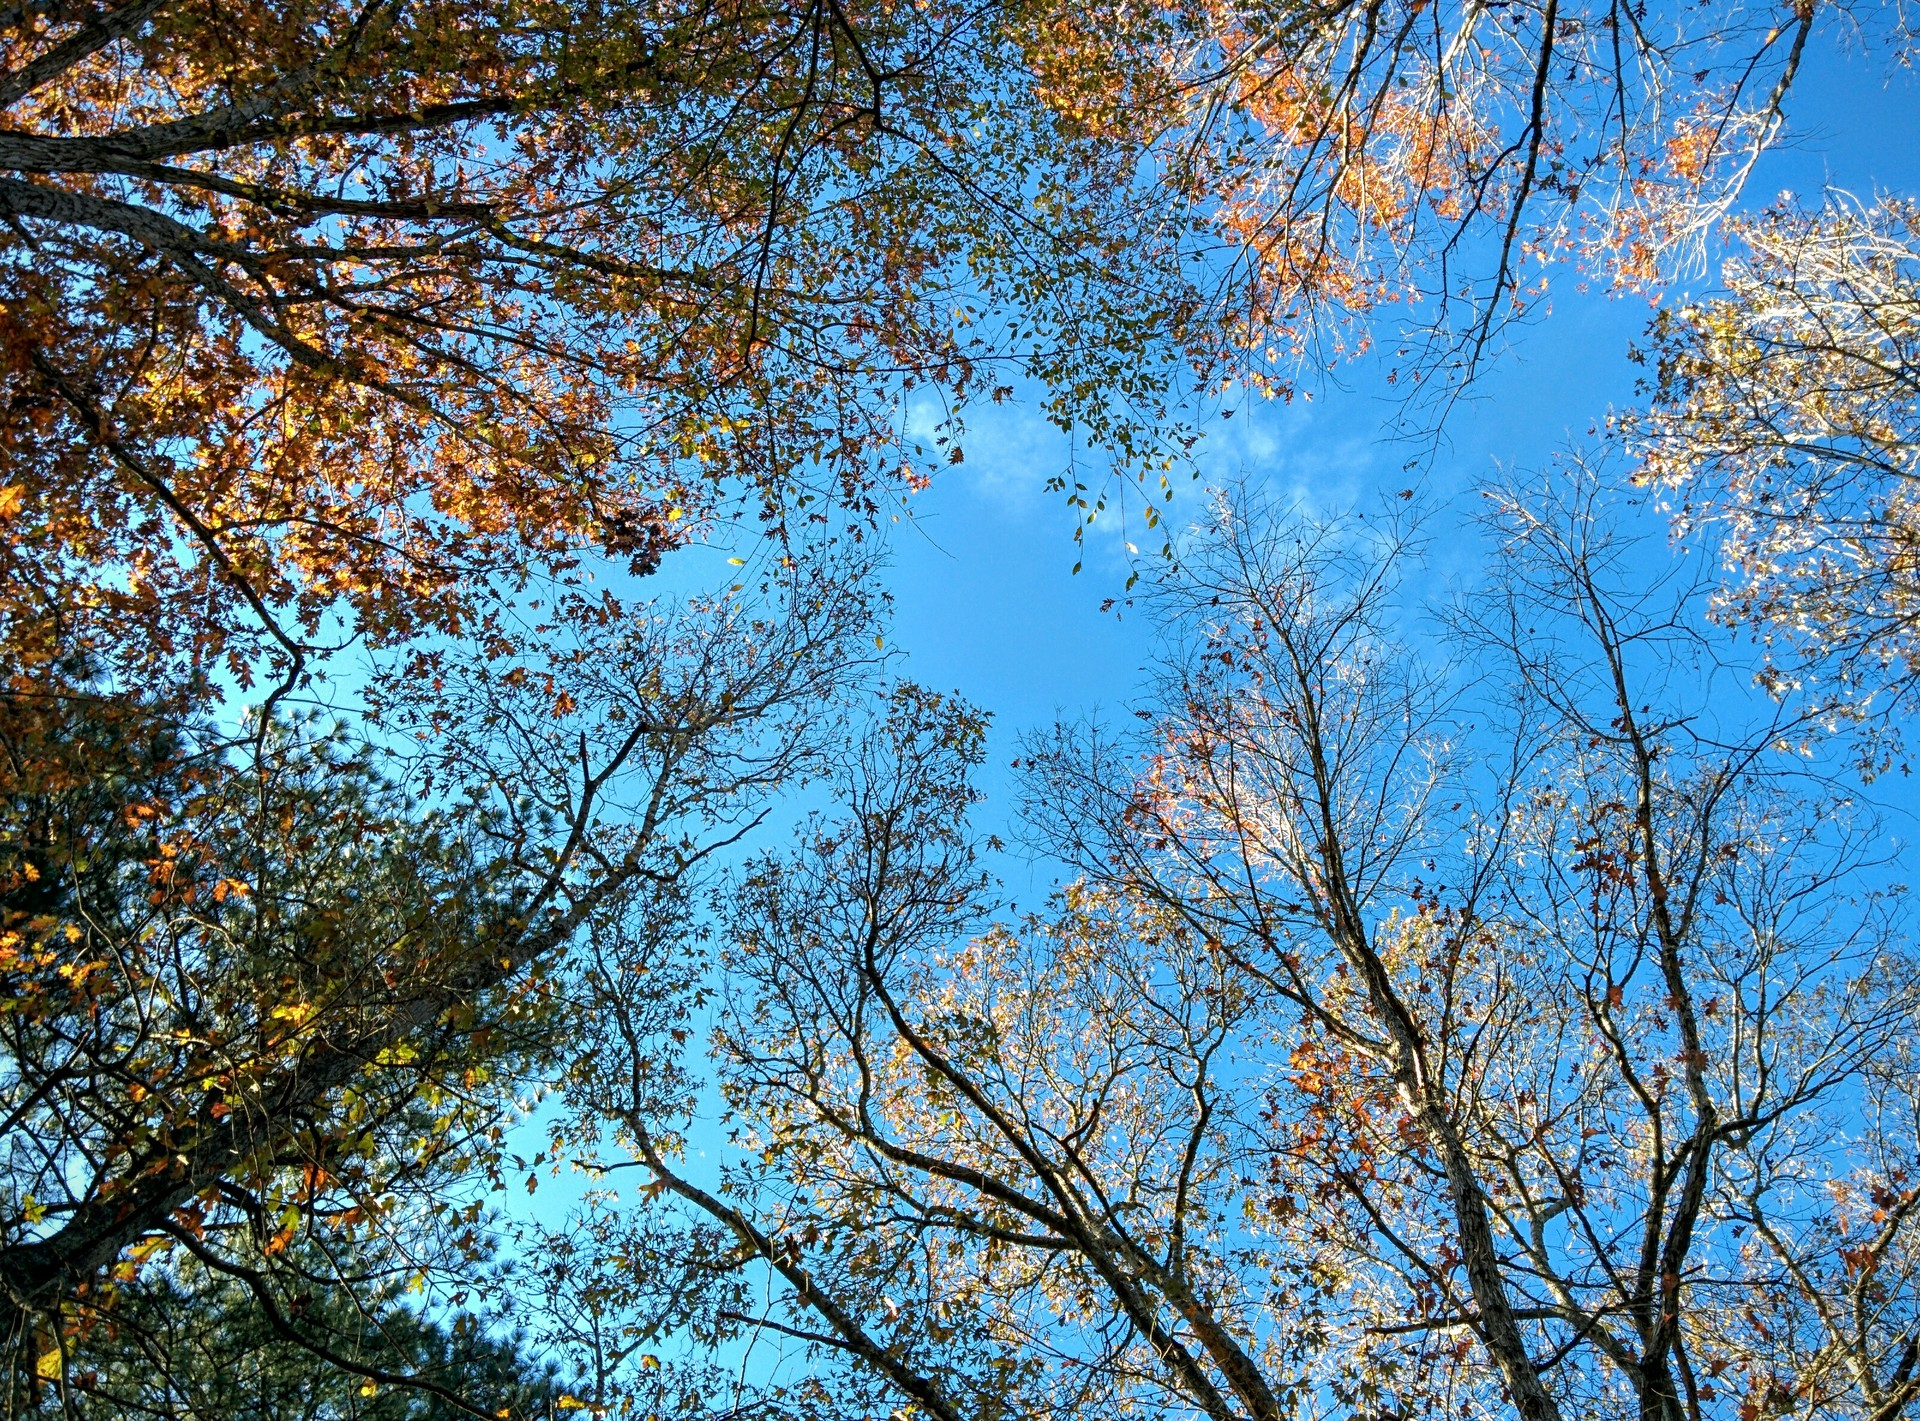 forest canopy | jrcastine, sky, autumn, nature